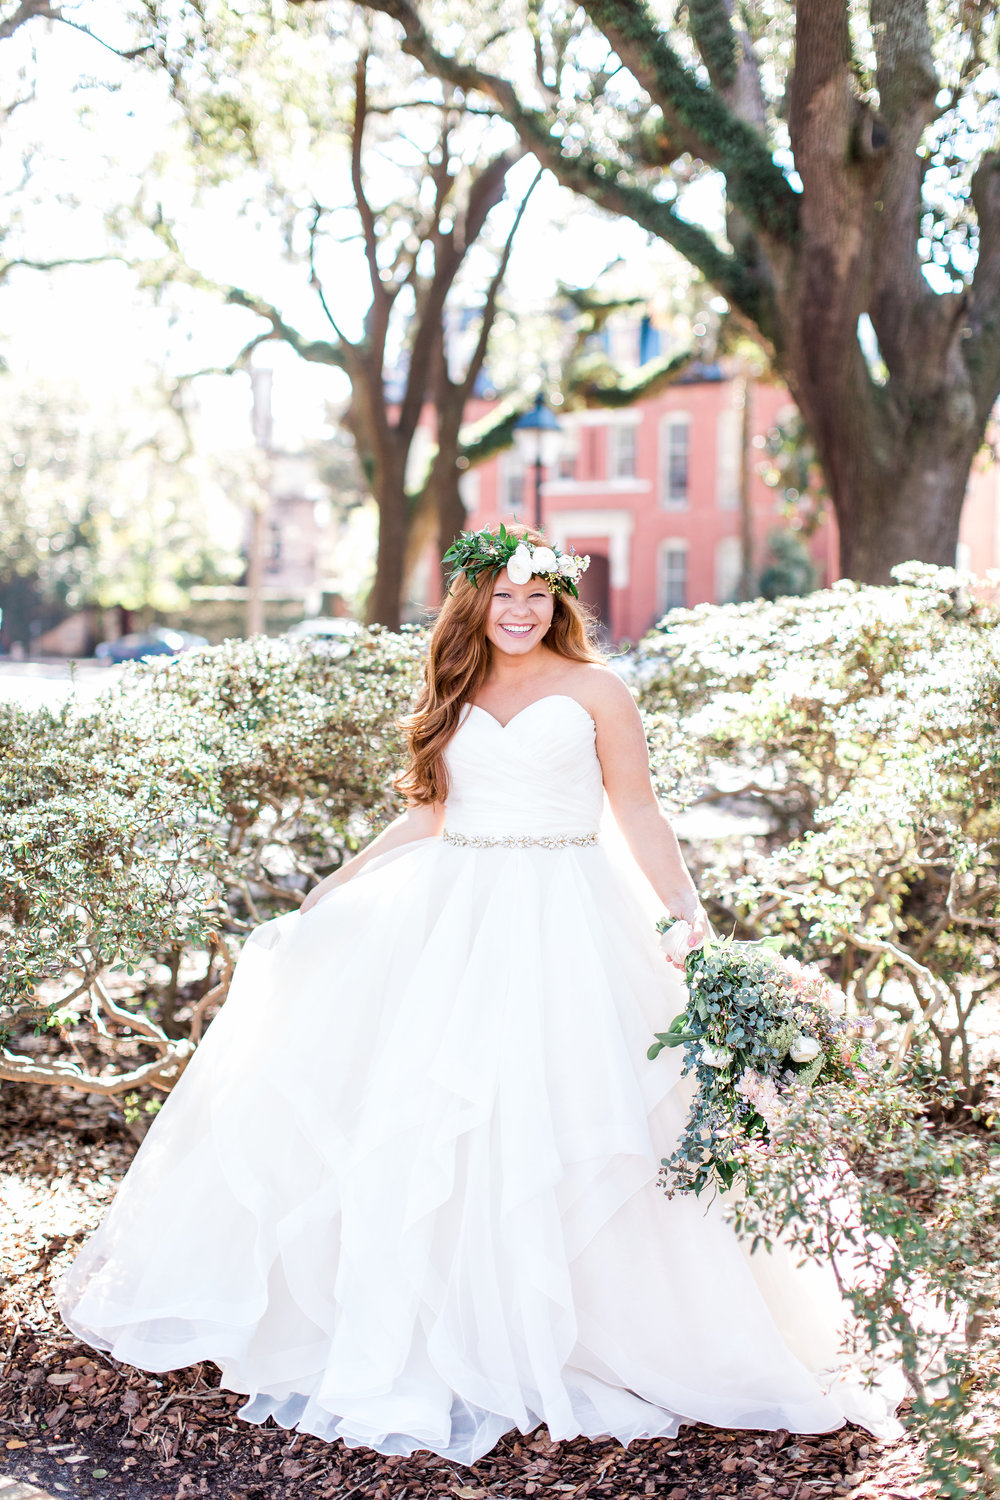 apt-b-photography-mary-elizabeths-bridal-boutique-adele-amelia-accessories-morilee-5504-savannah-bridal-boutique-savannah-weddings-savannah-wedding-photographer-savannah-bridal-gowns-savannah-wedding-dresses-historic-savannah-wedding-9.jpg